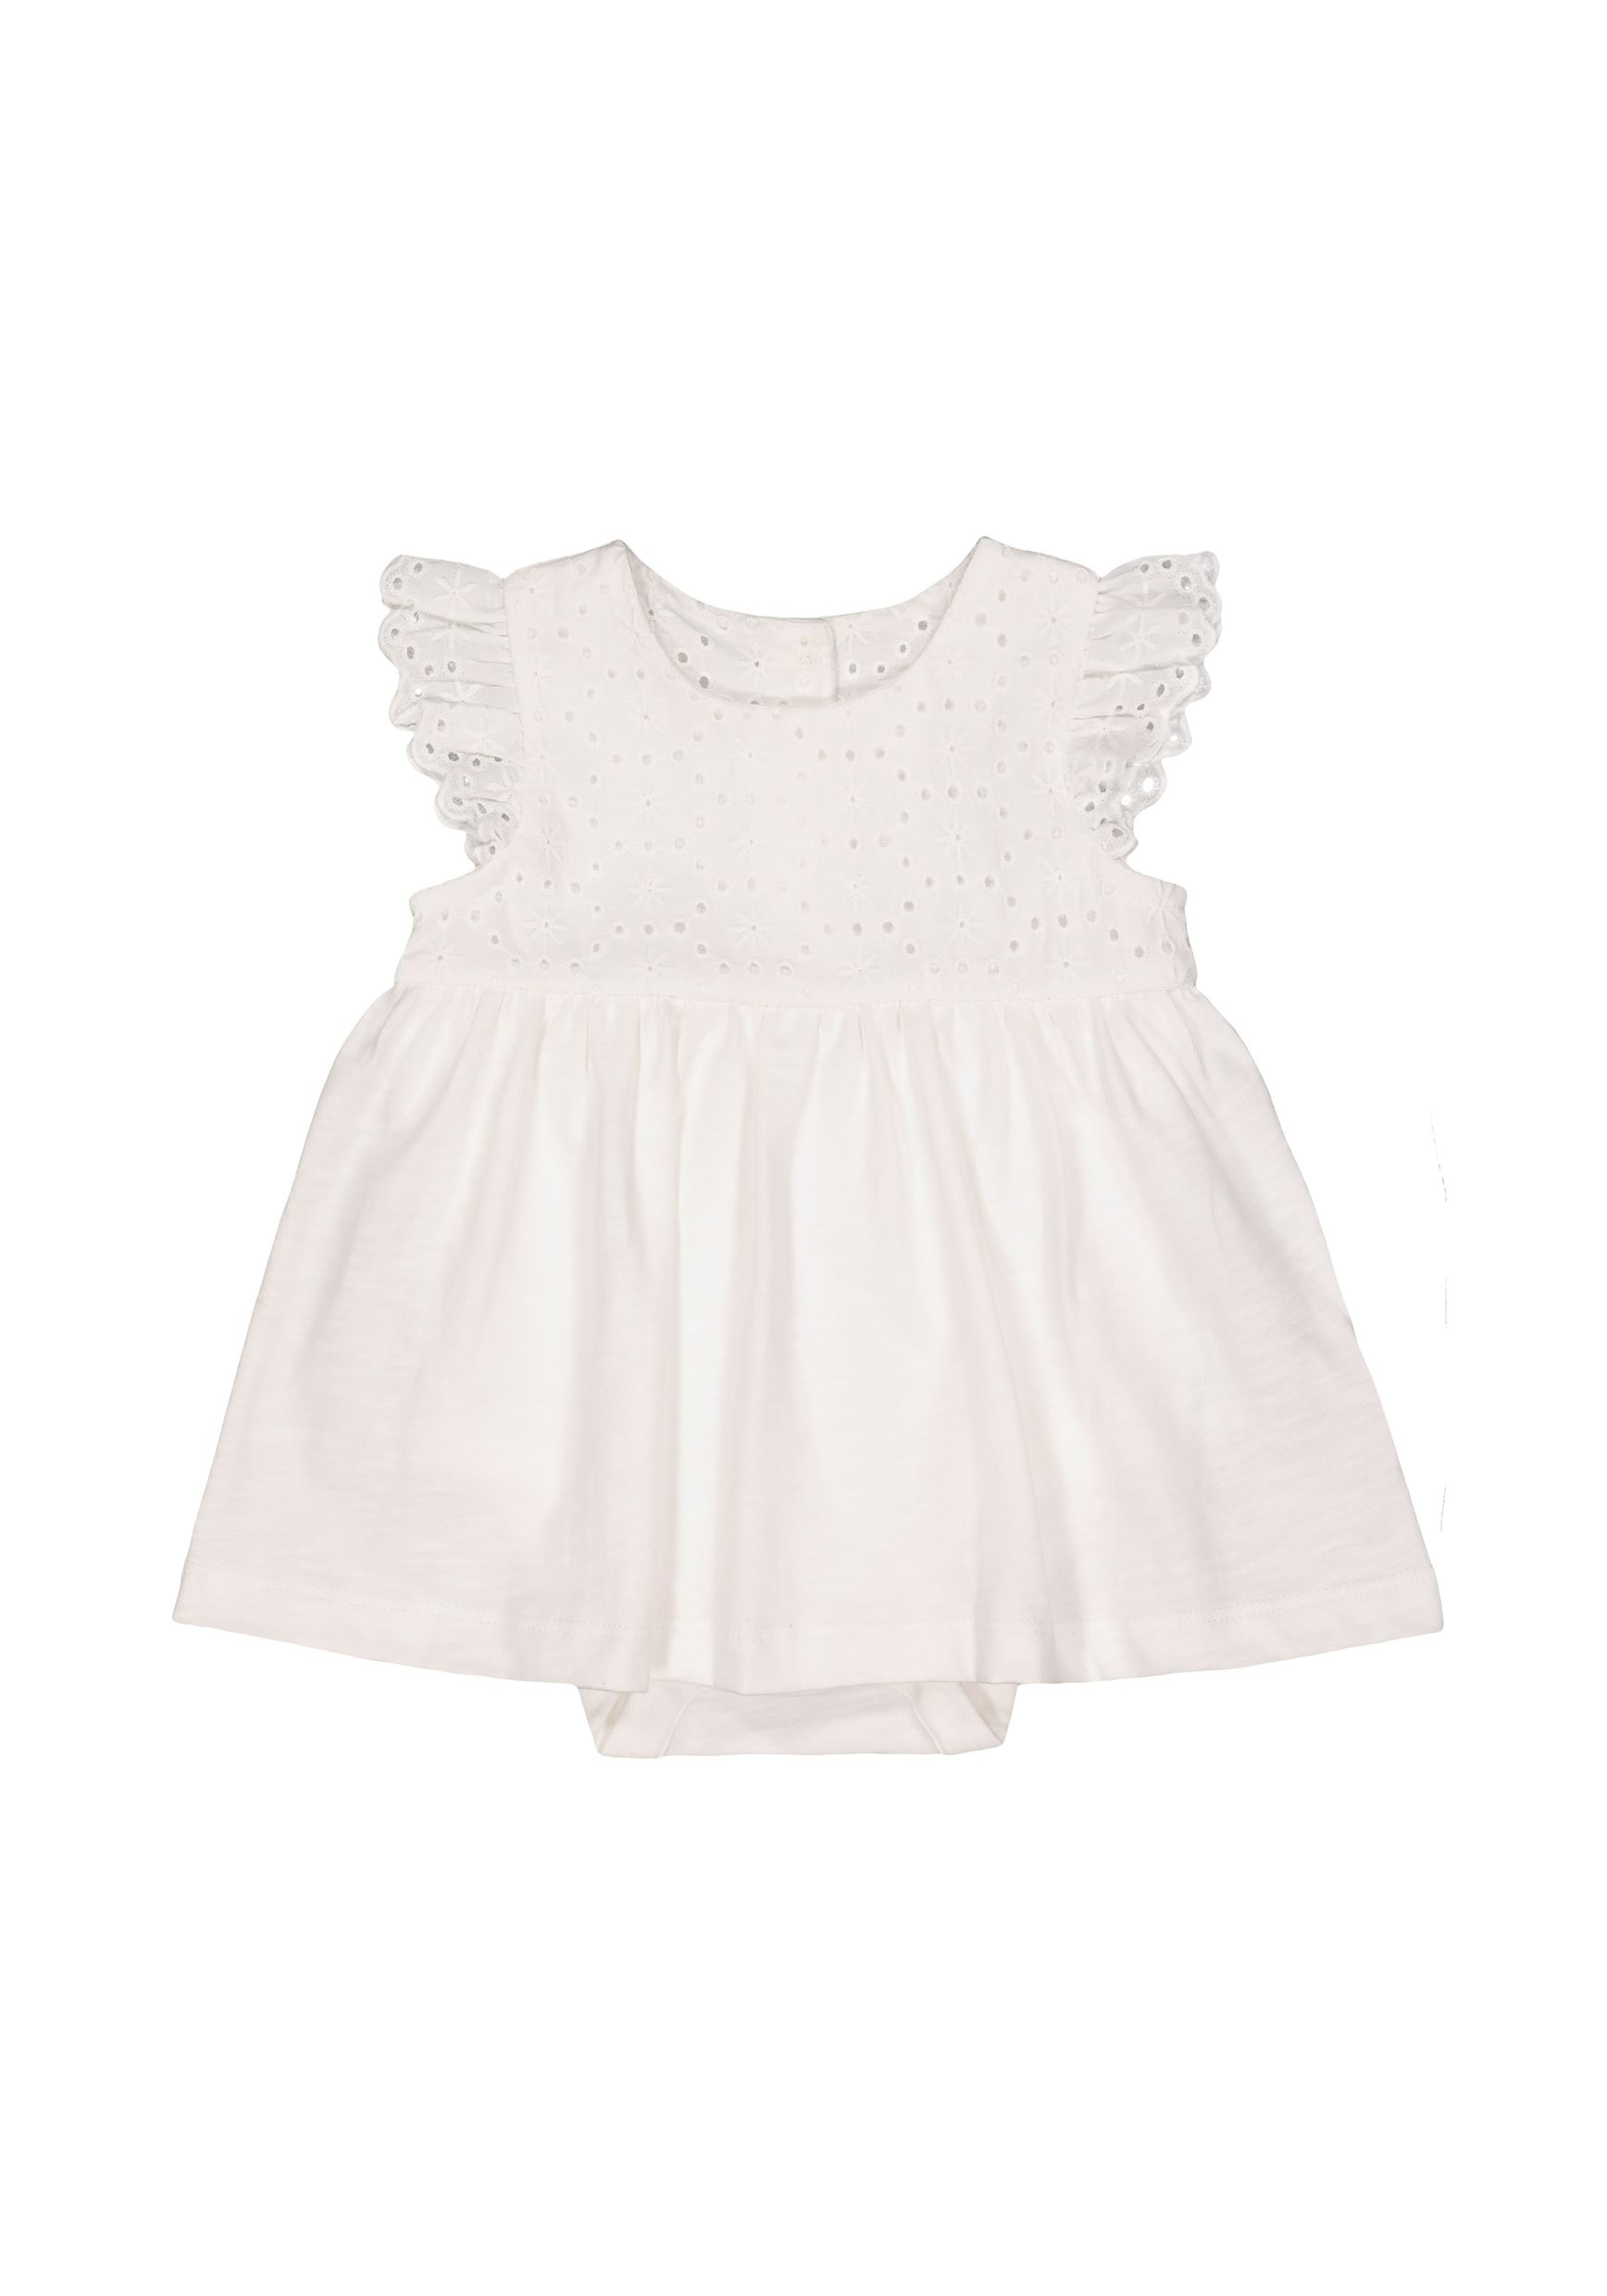 Mothercare Girls White Solid Dress & Panty Set